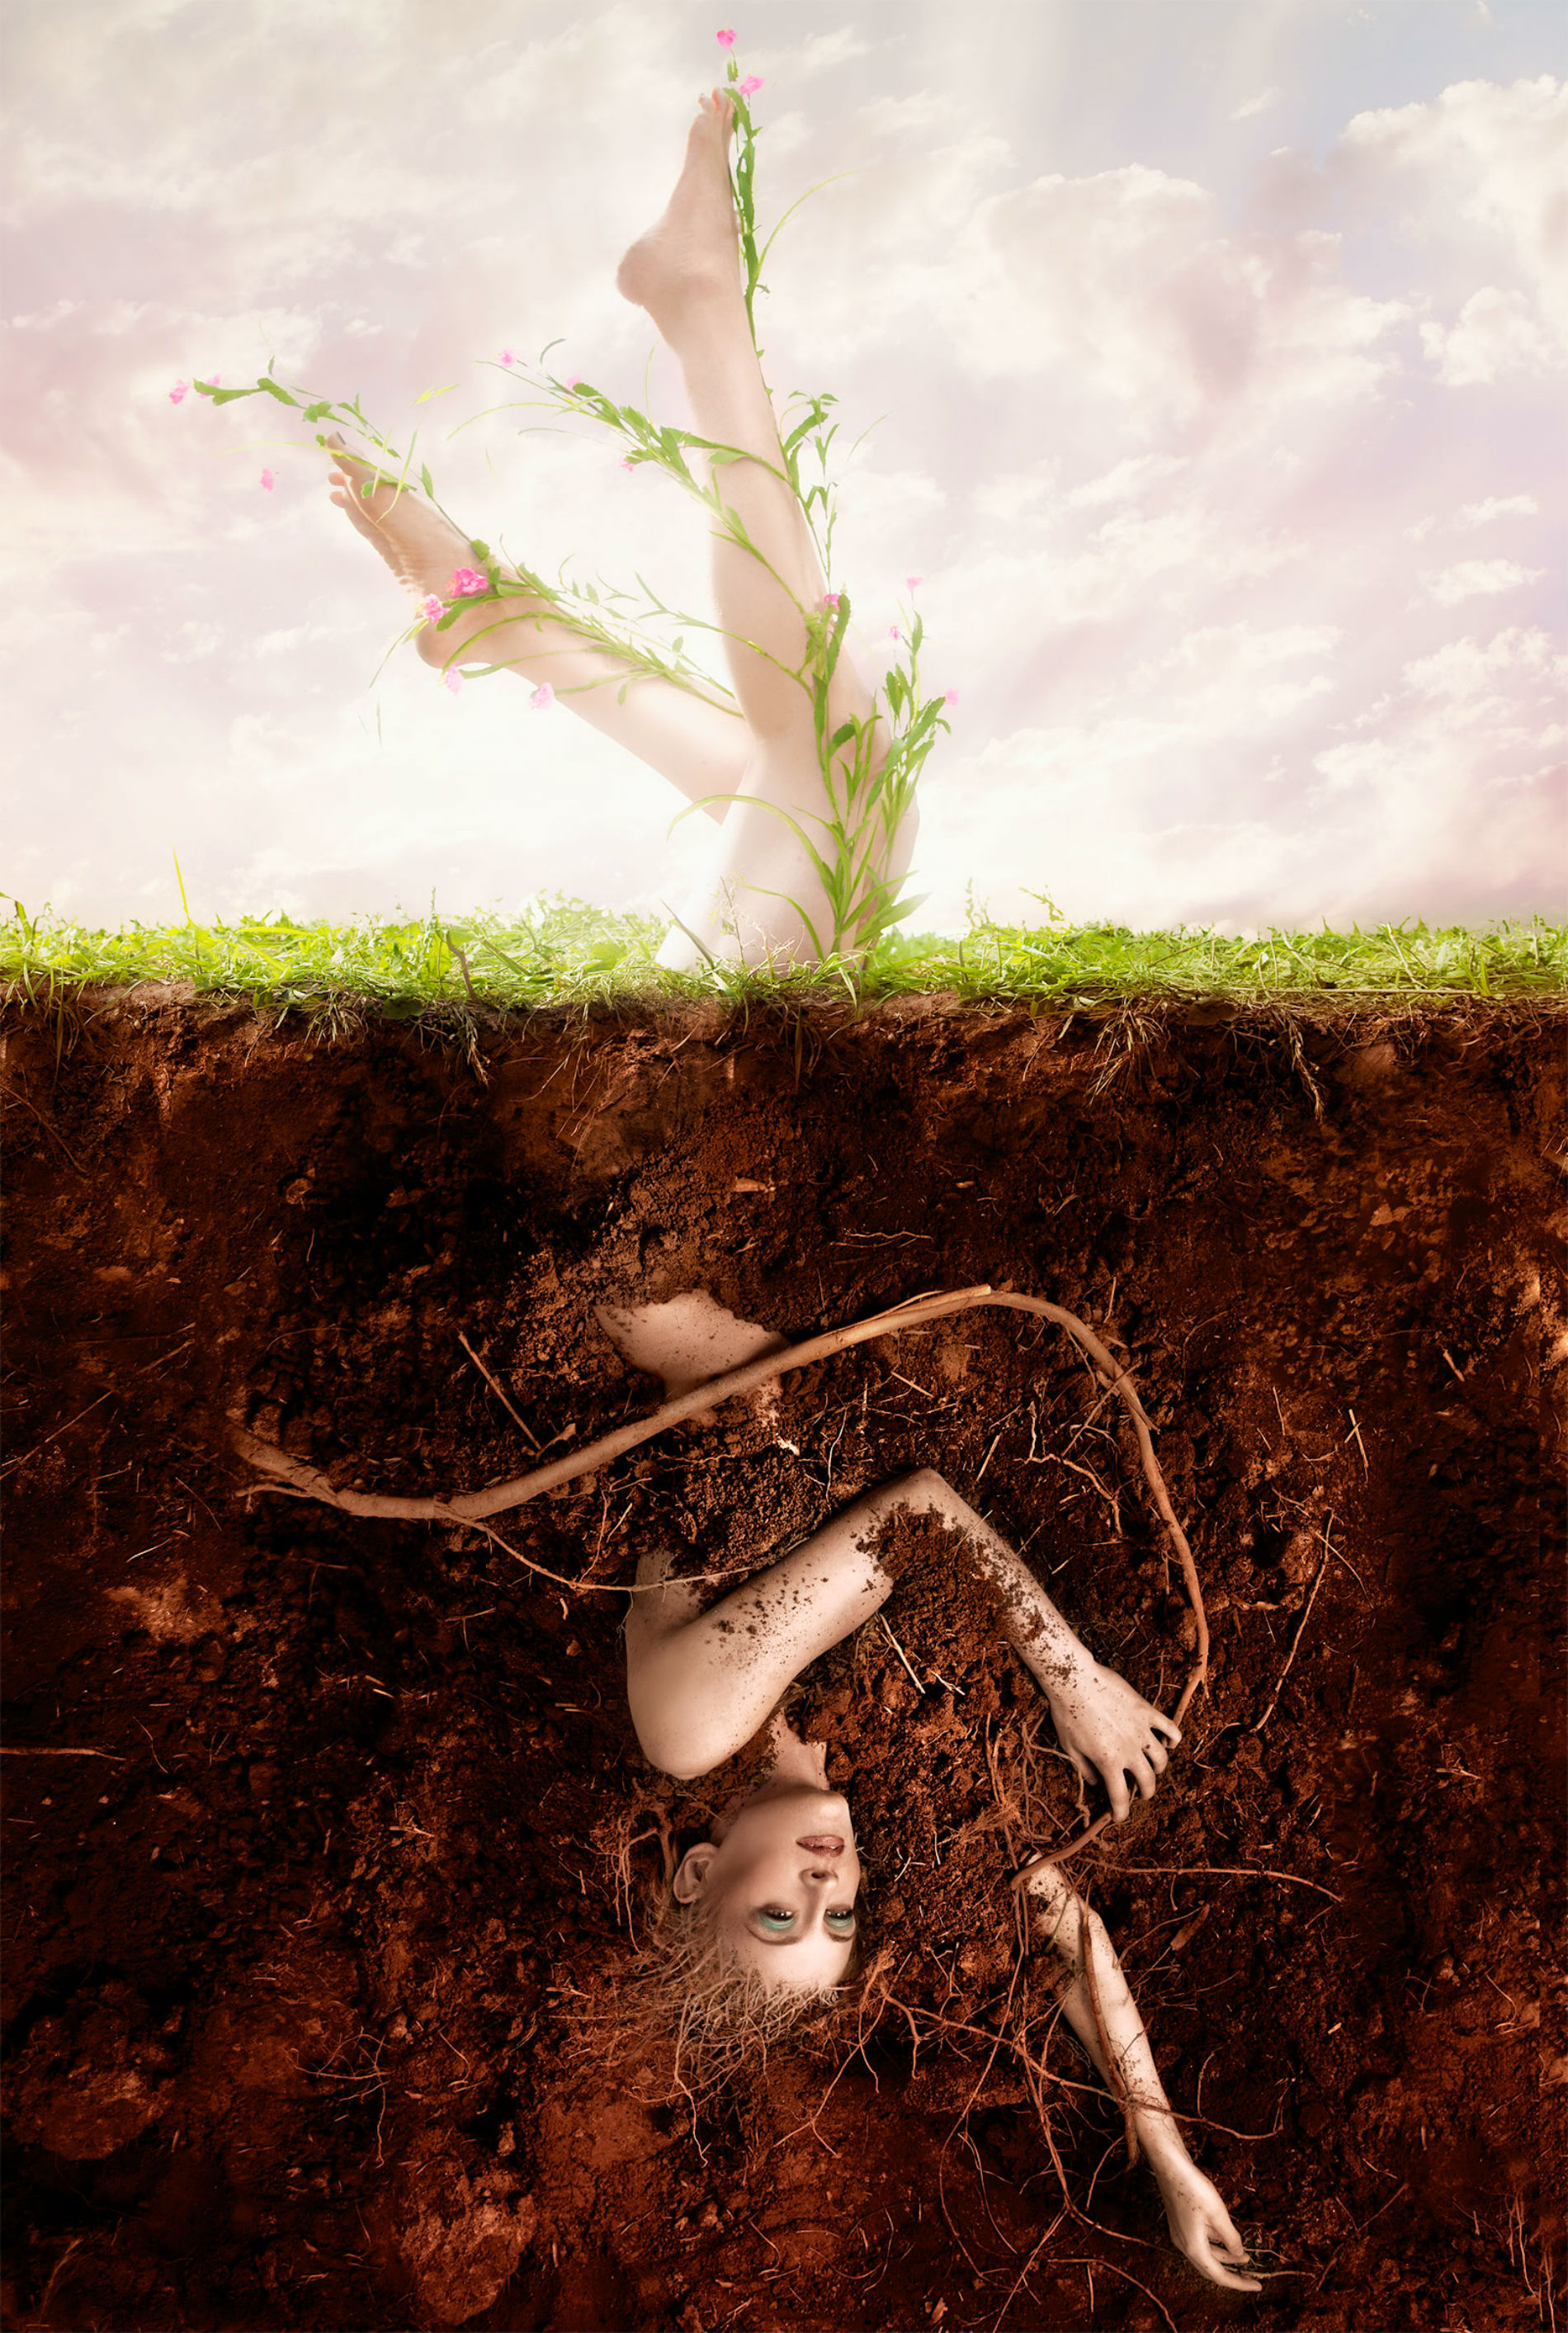 aaron nace photography digital colour surreal model plant earth